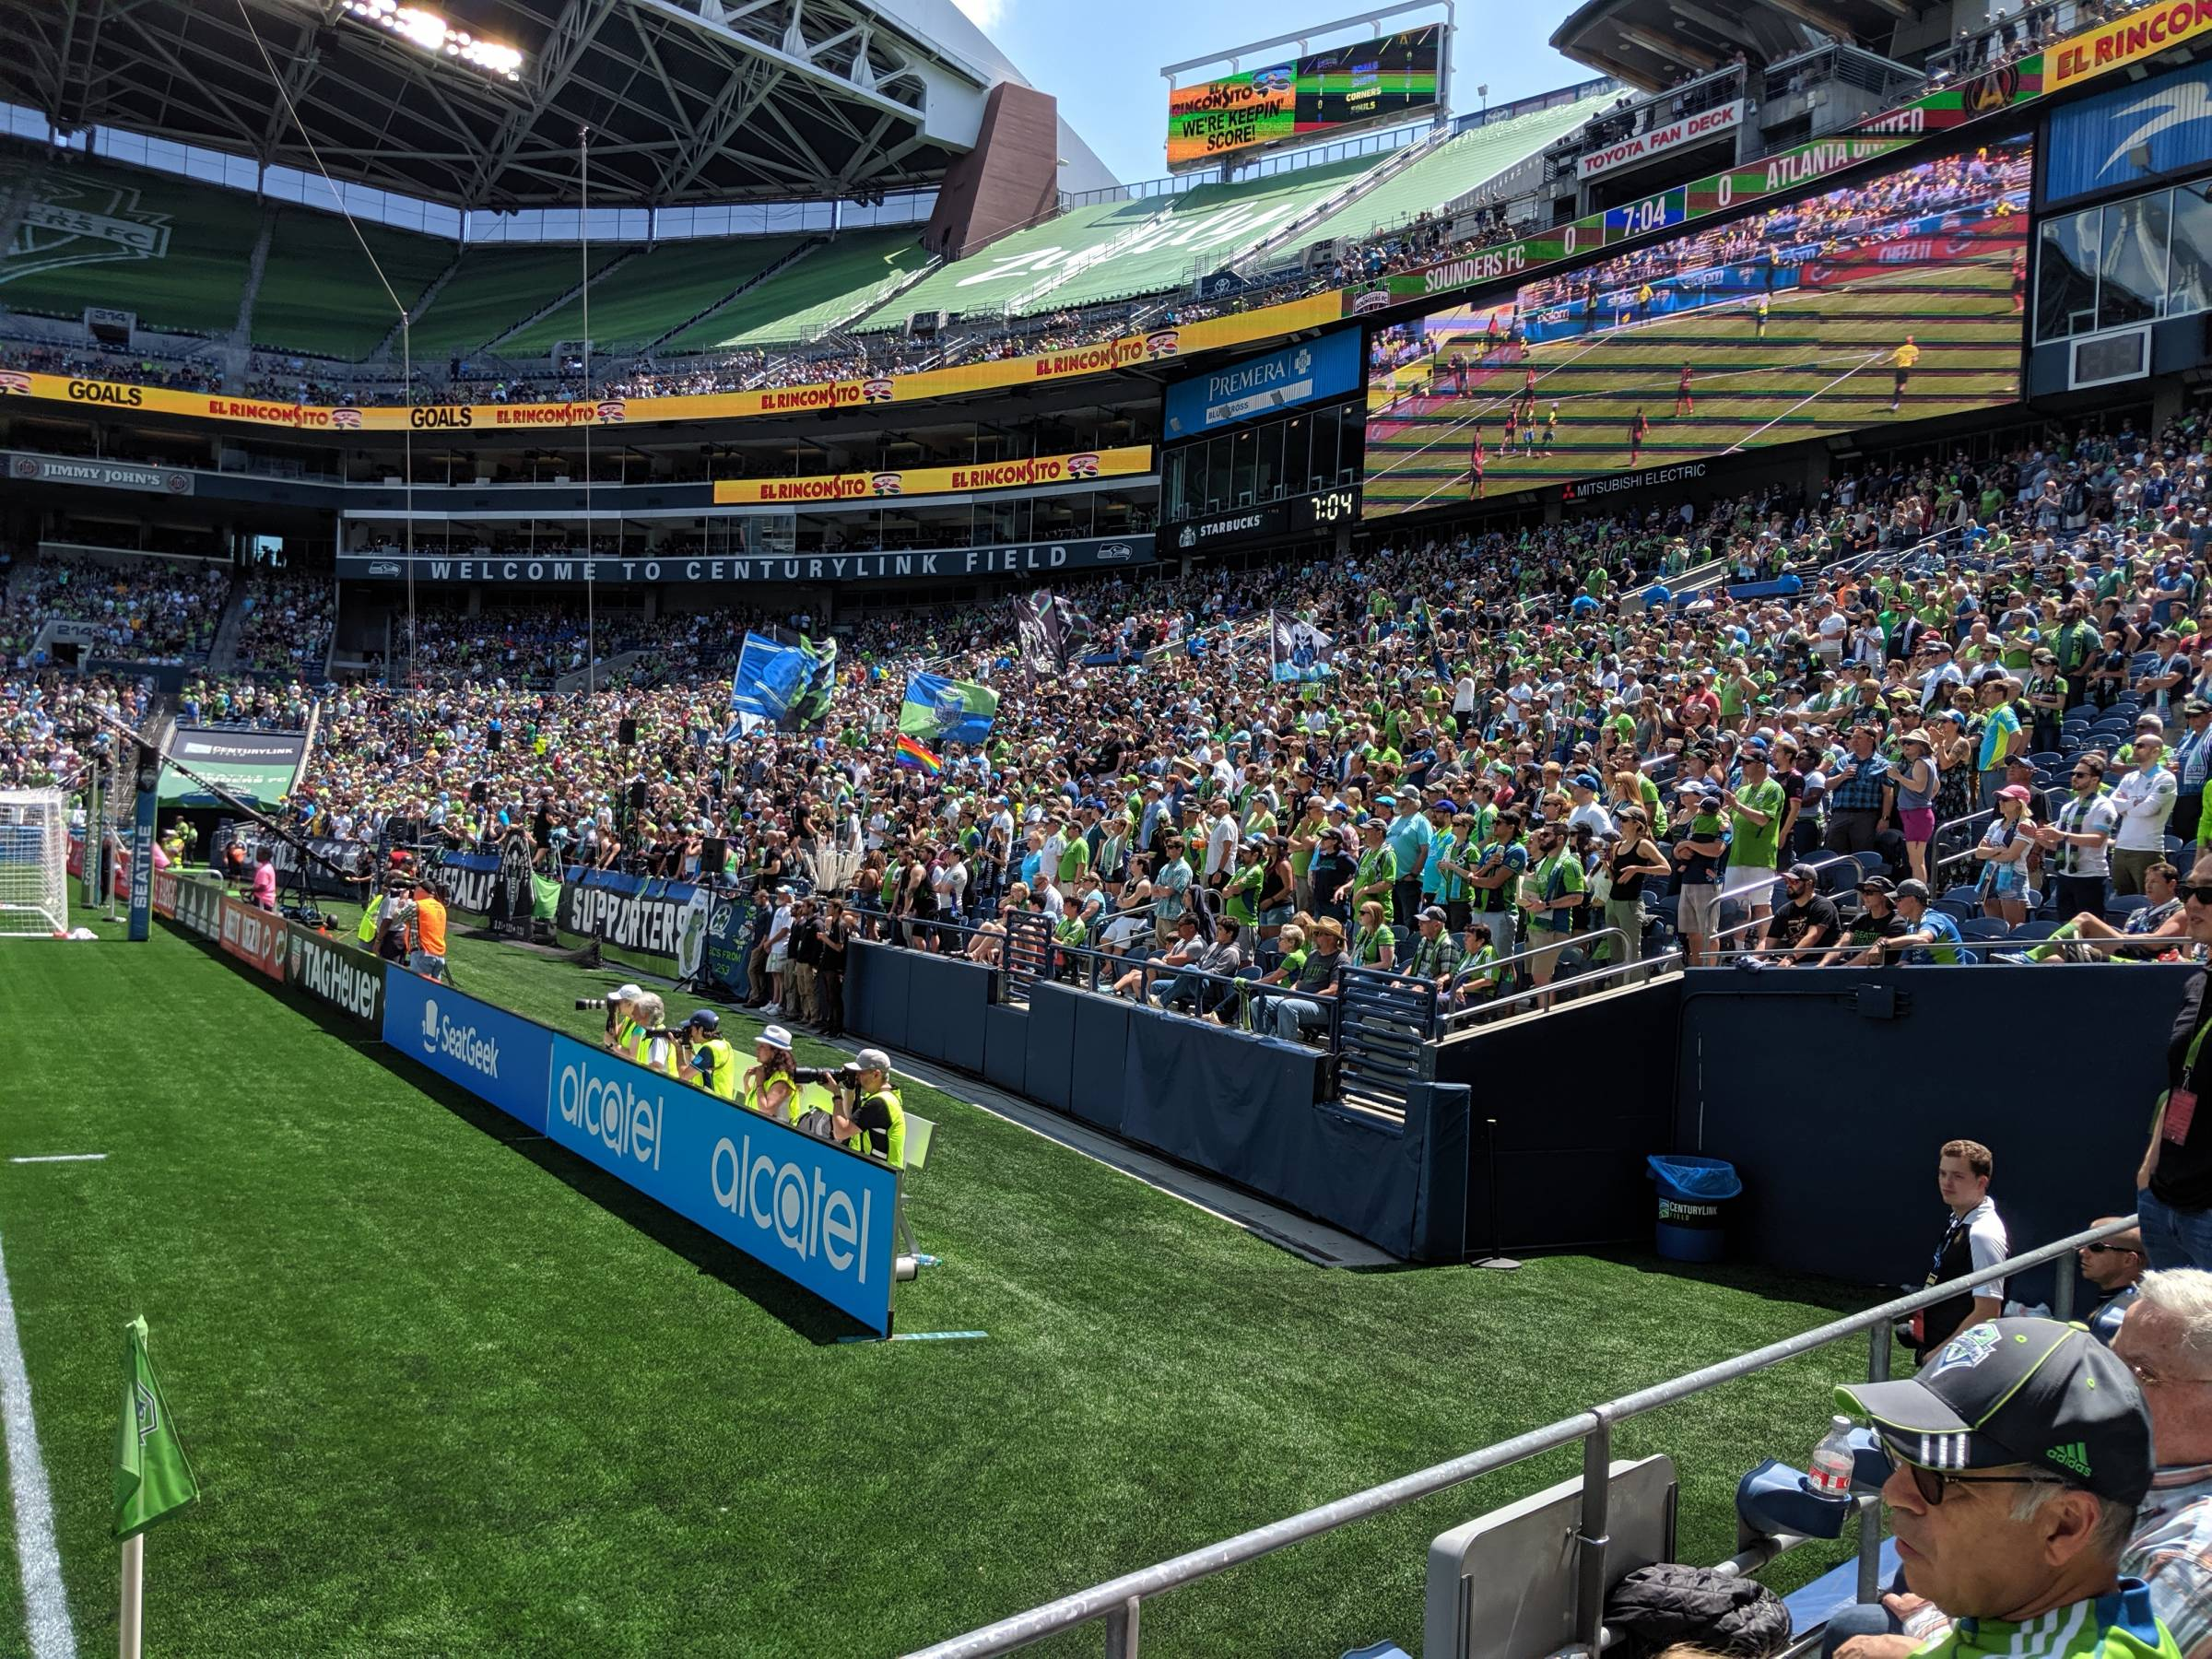 emerald city supporters at CenturyLink Field